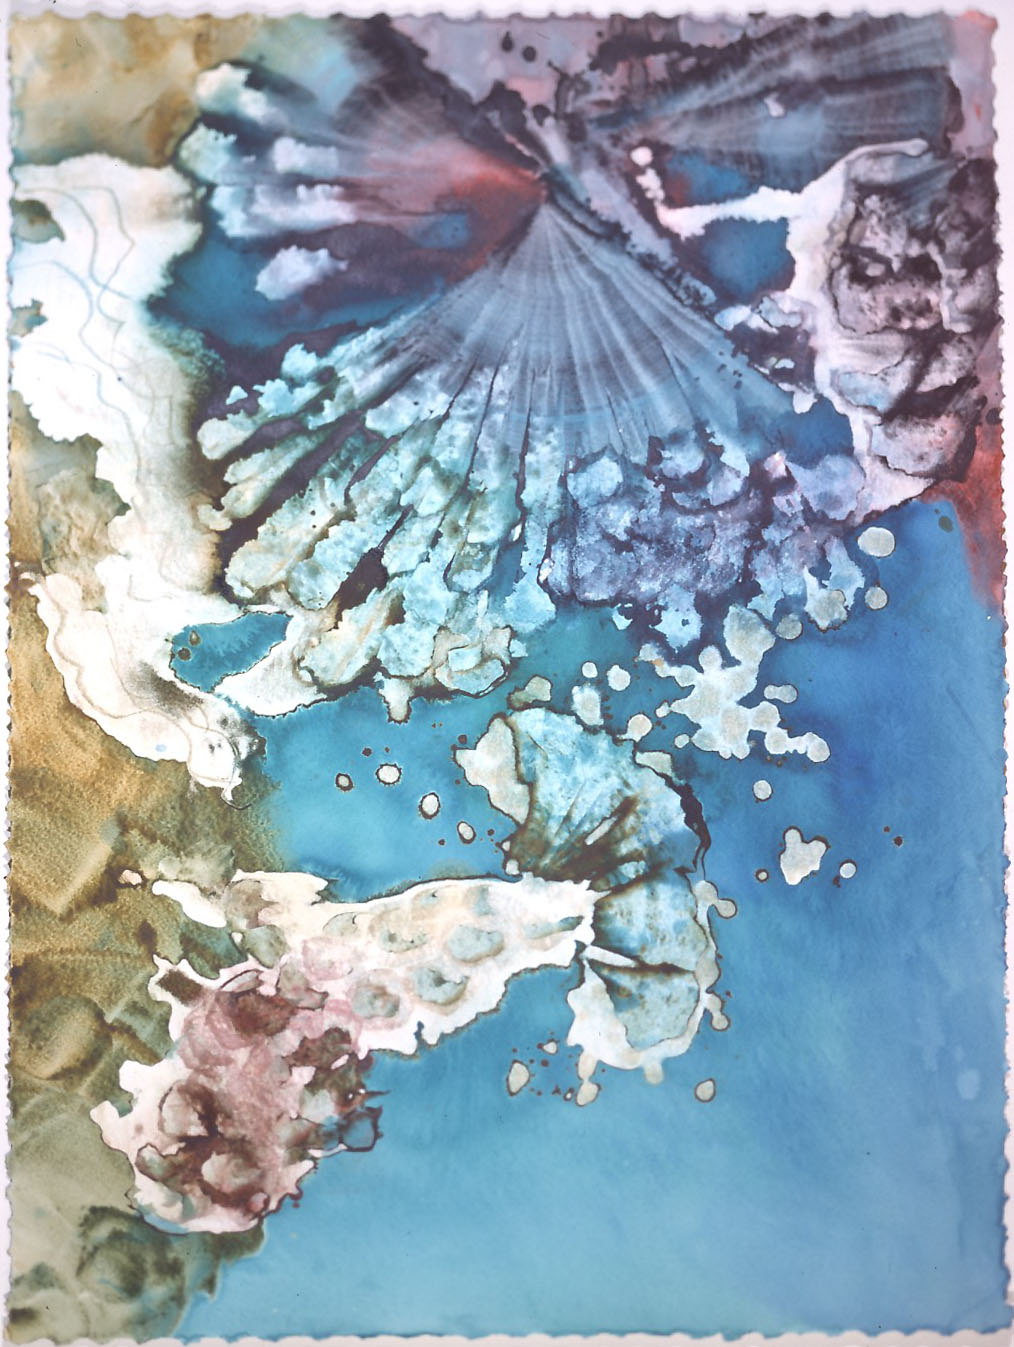 """Blue Crystal"" 1998, Crystal Reef Series, acrylic on paper, 42 x 32 inches (107 x 81 cm)."